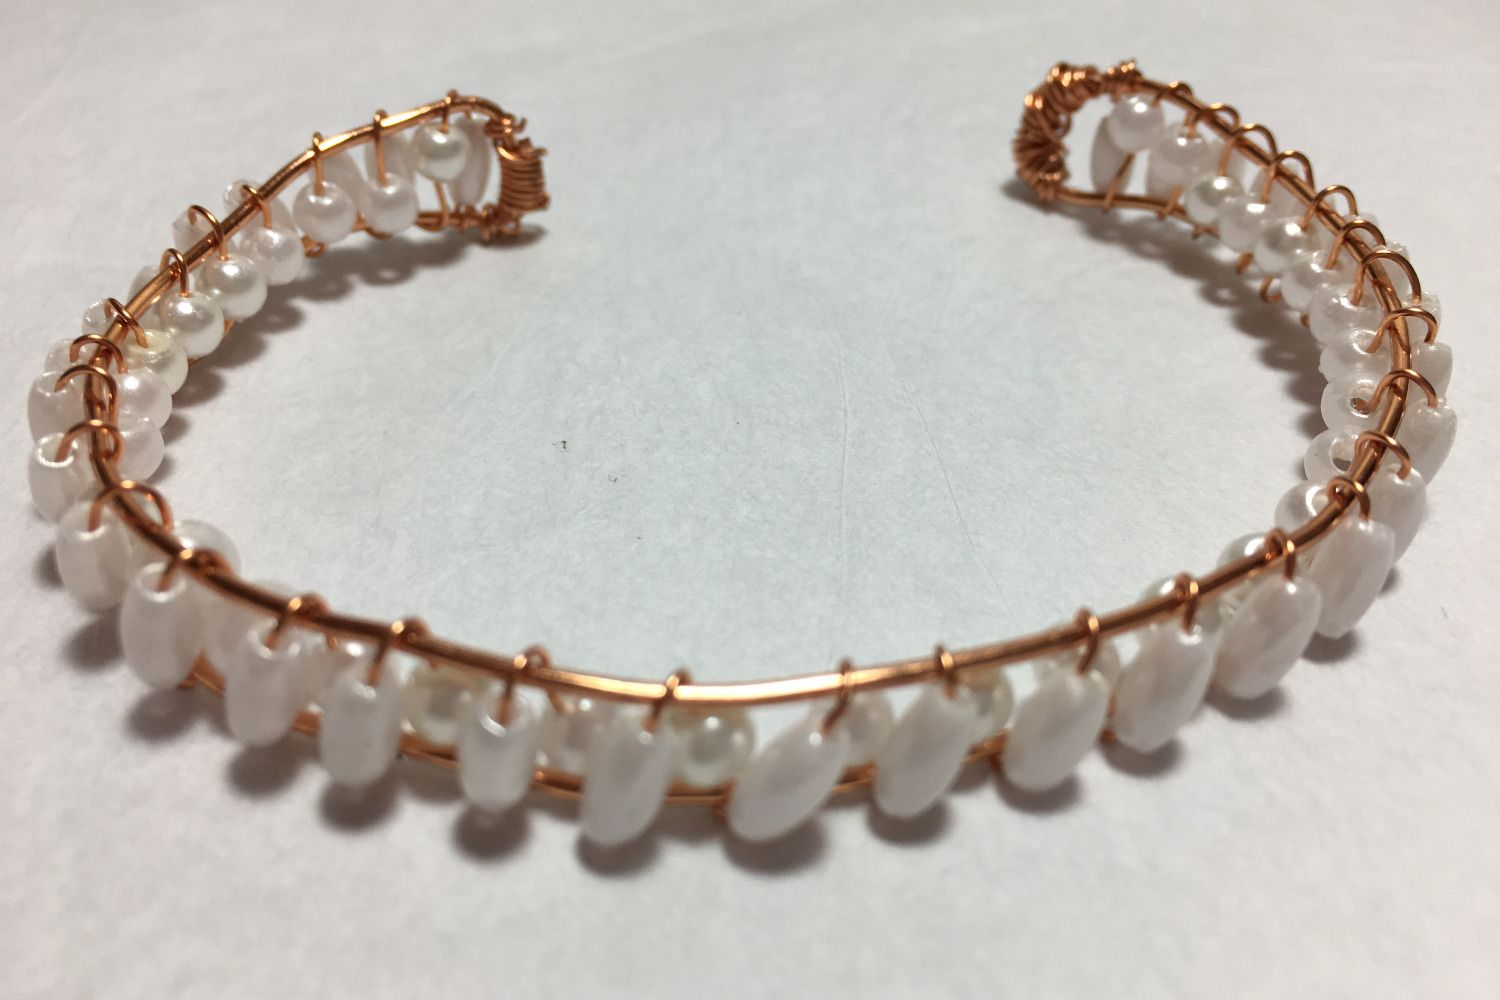 Copper Cuff Bracelet with Pearlescent Beads This elegant cuff ...